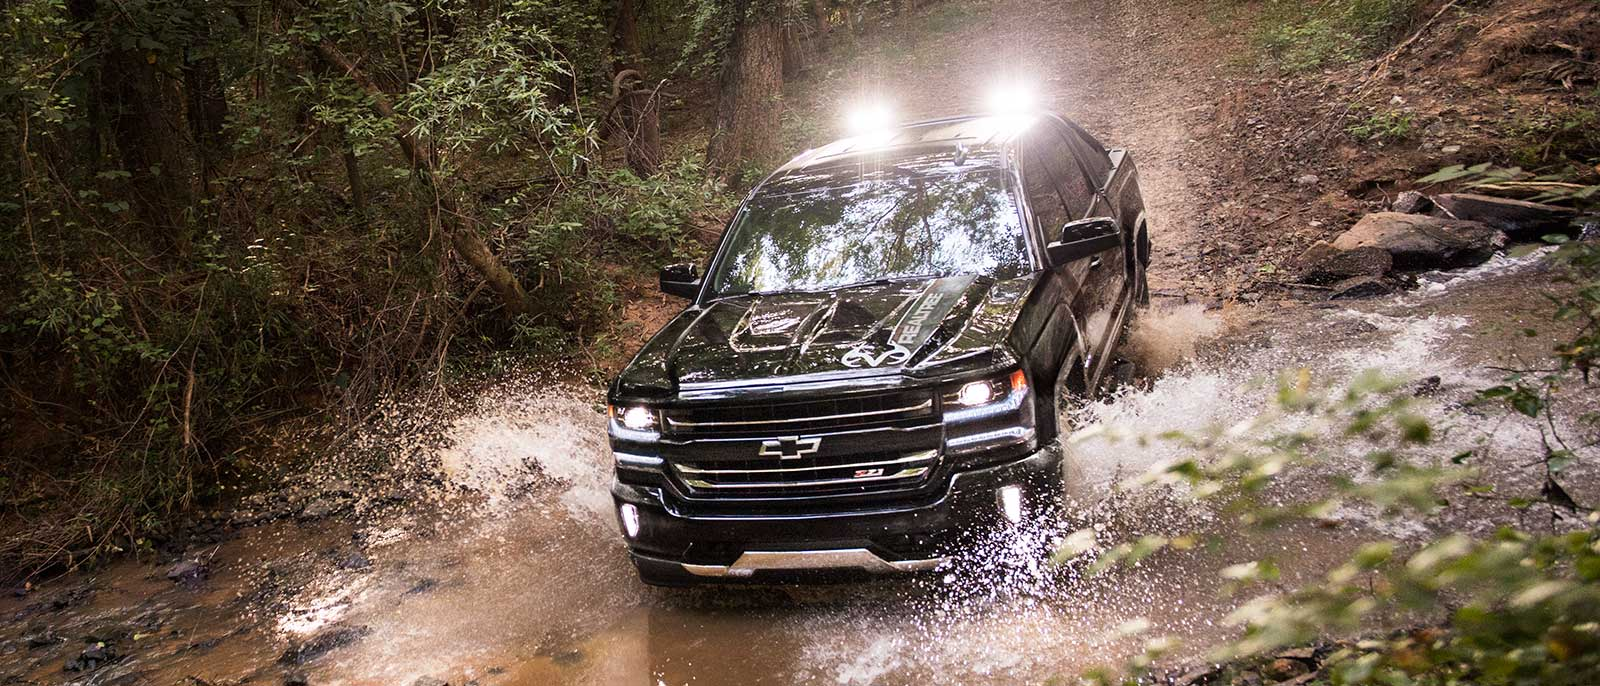 2017 Chevrolet Silverado 1500 crossing a river